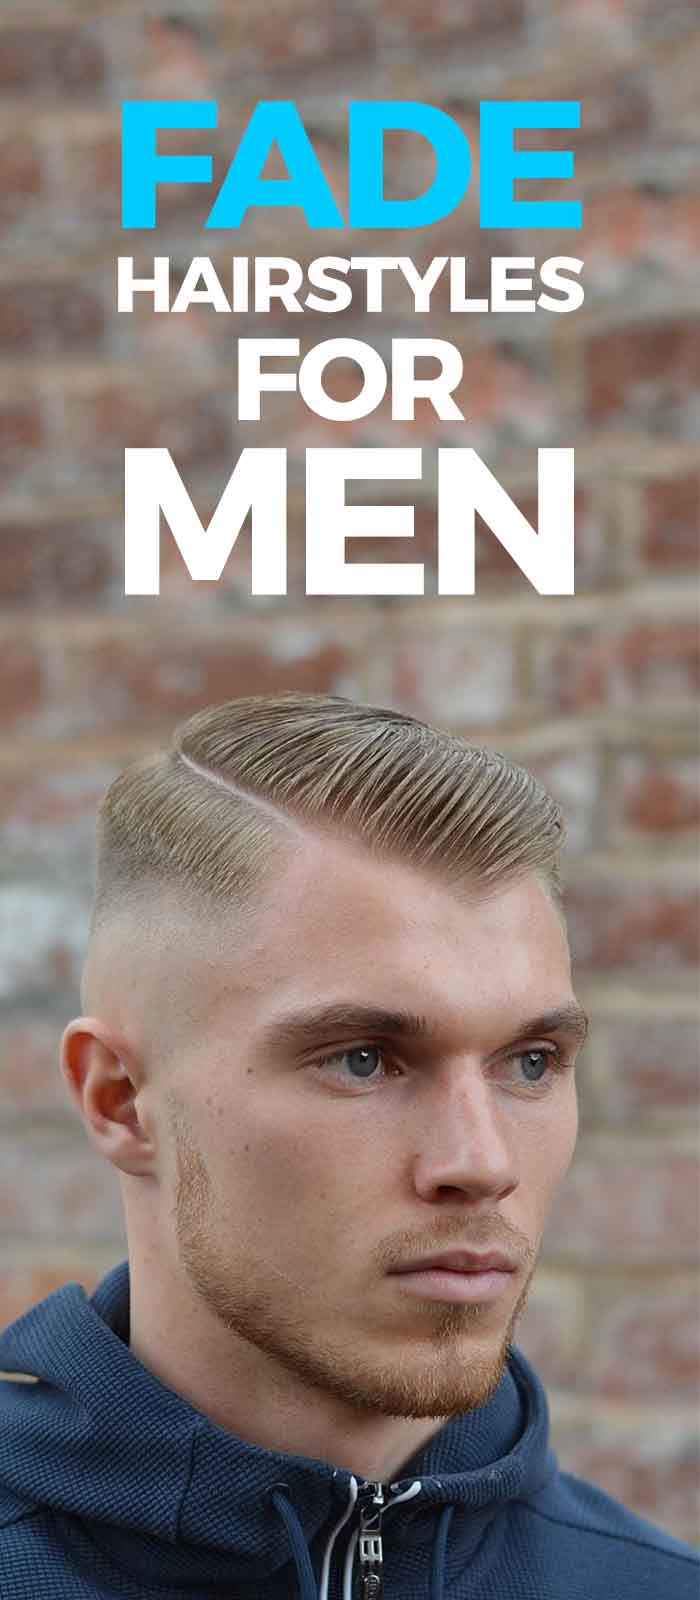 Hair Length For A Fade Haircut!